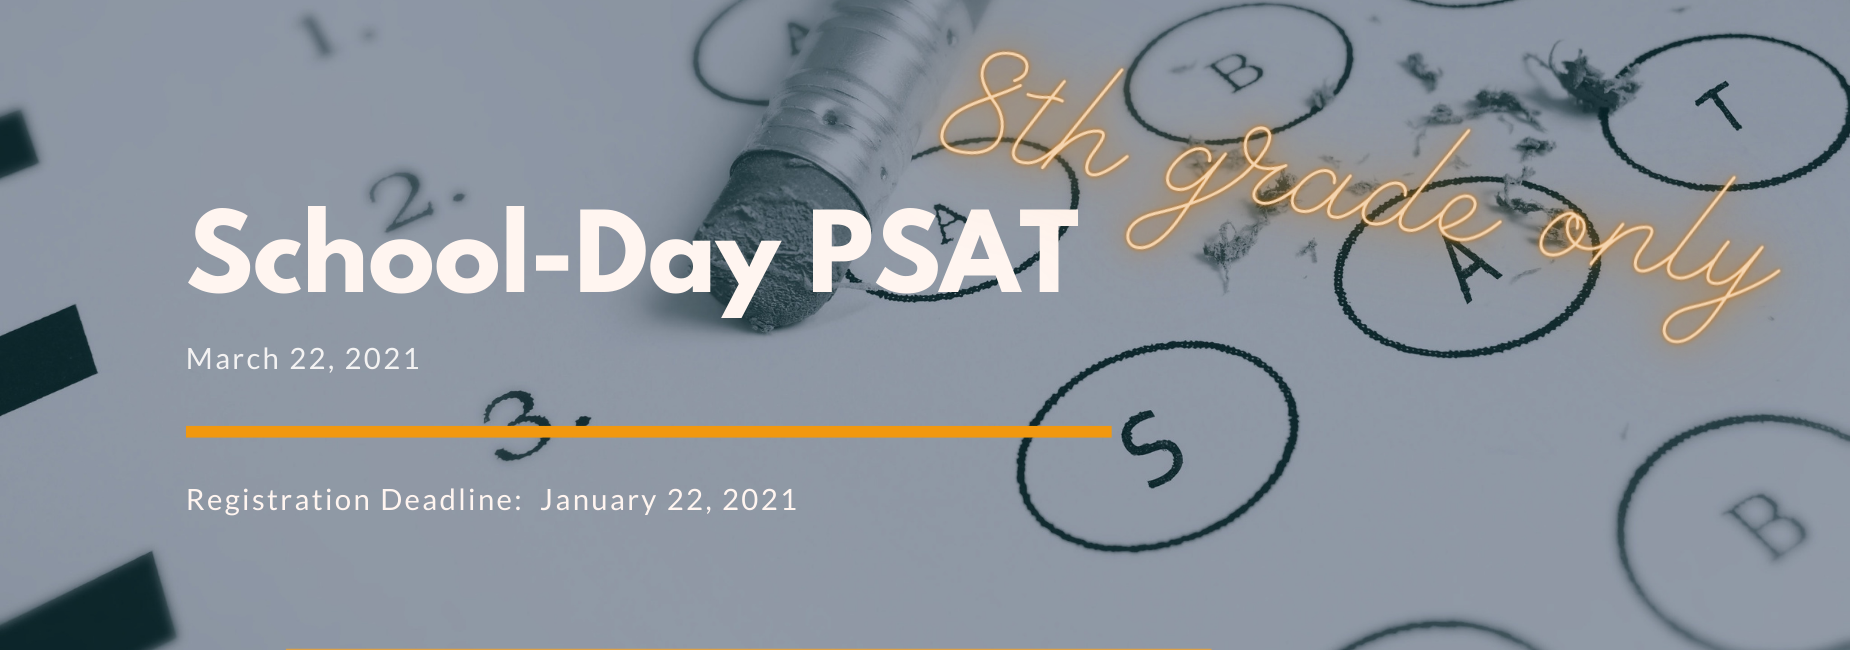 graphic describing the school day psat for 8th graders on March 22